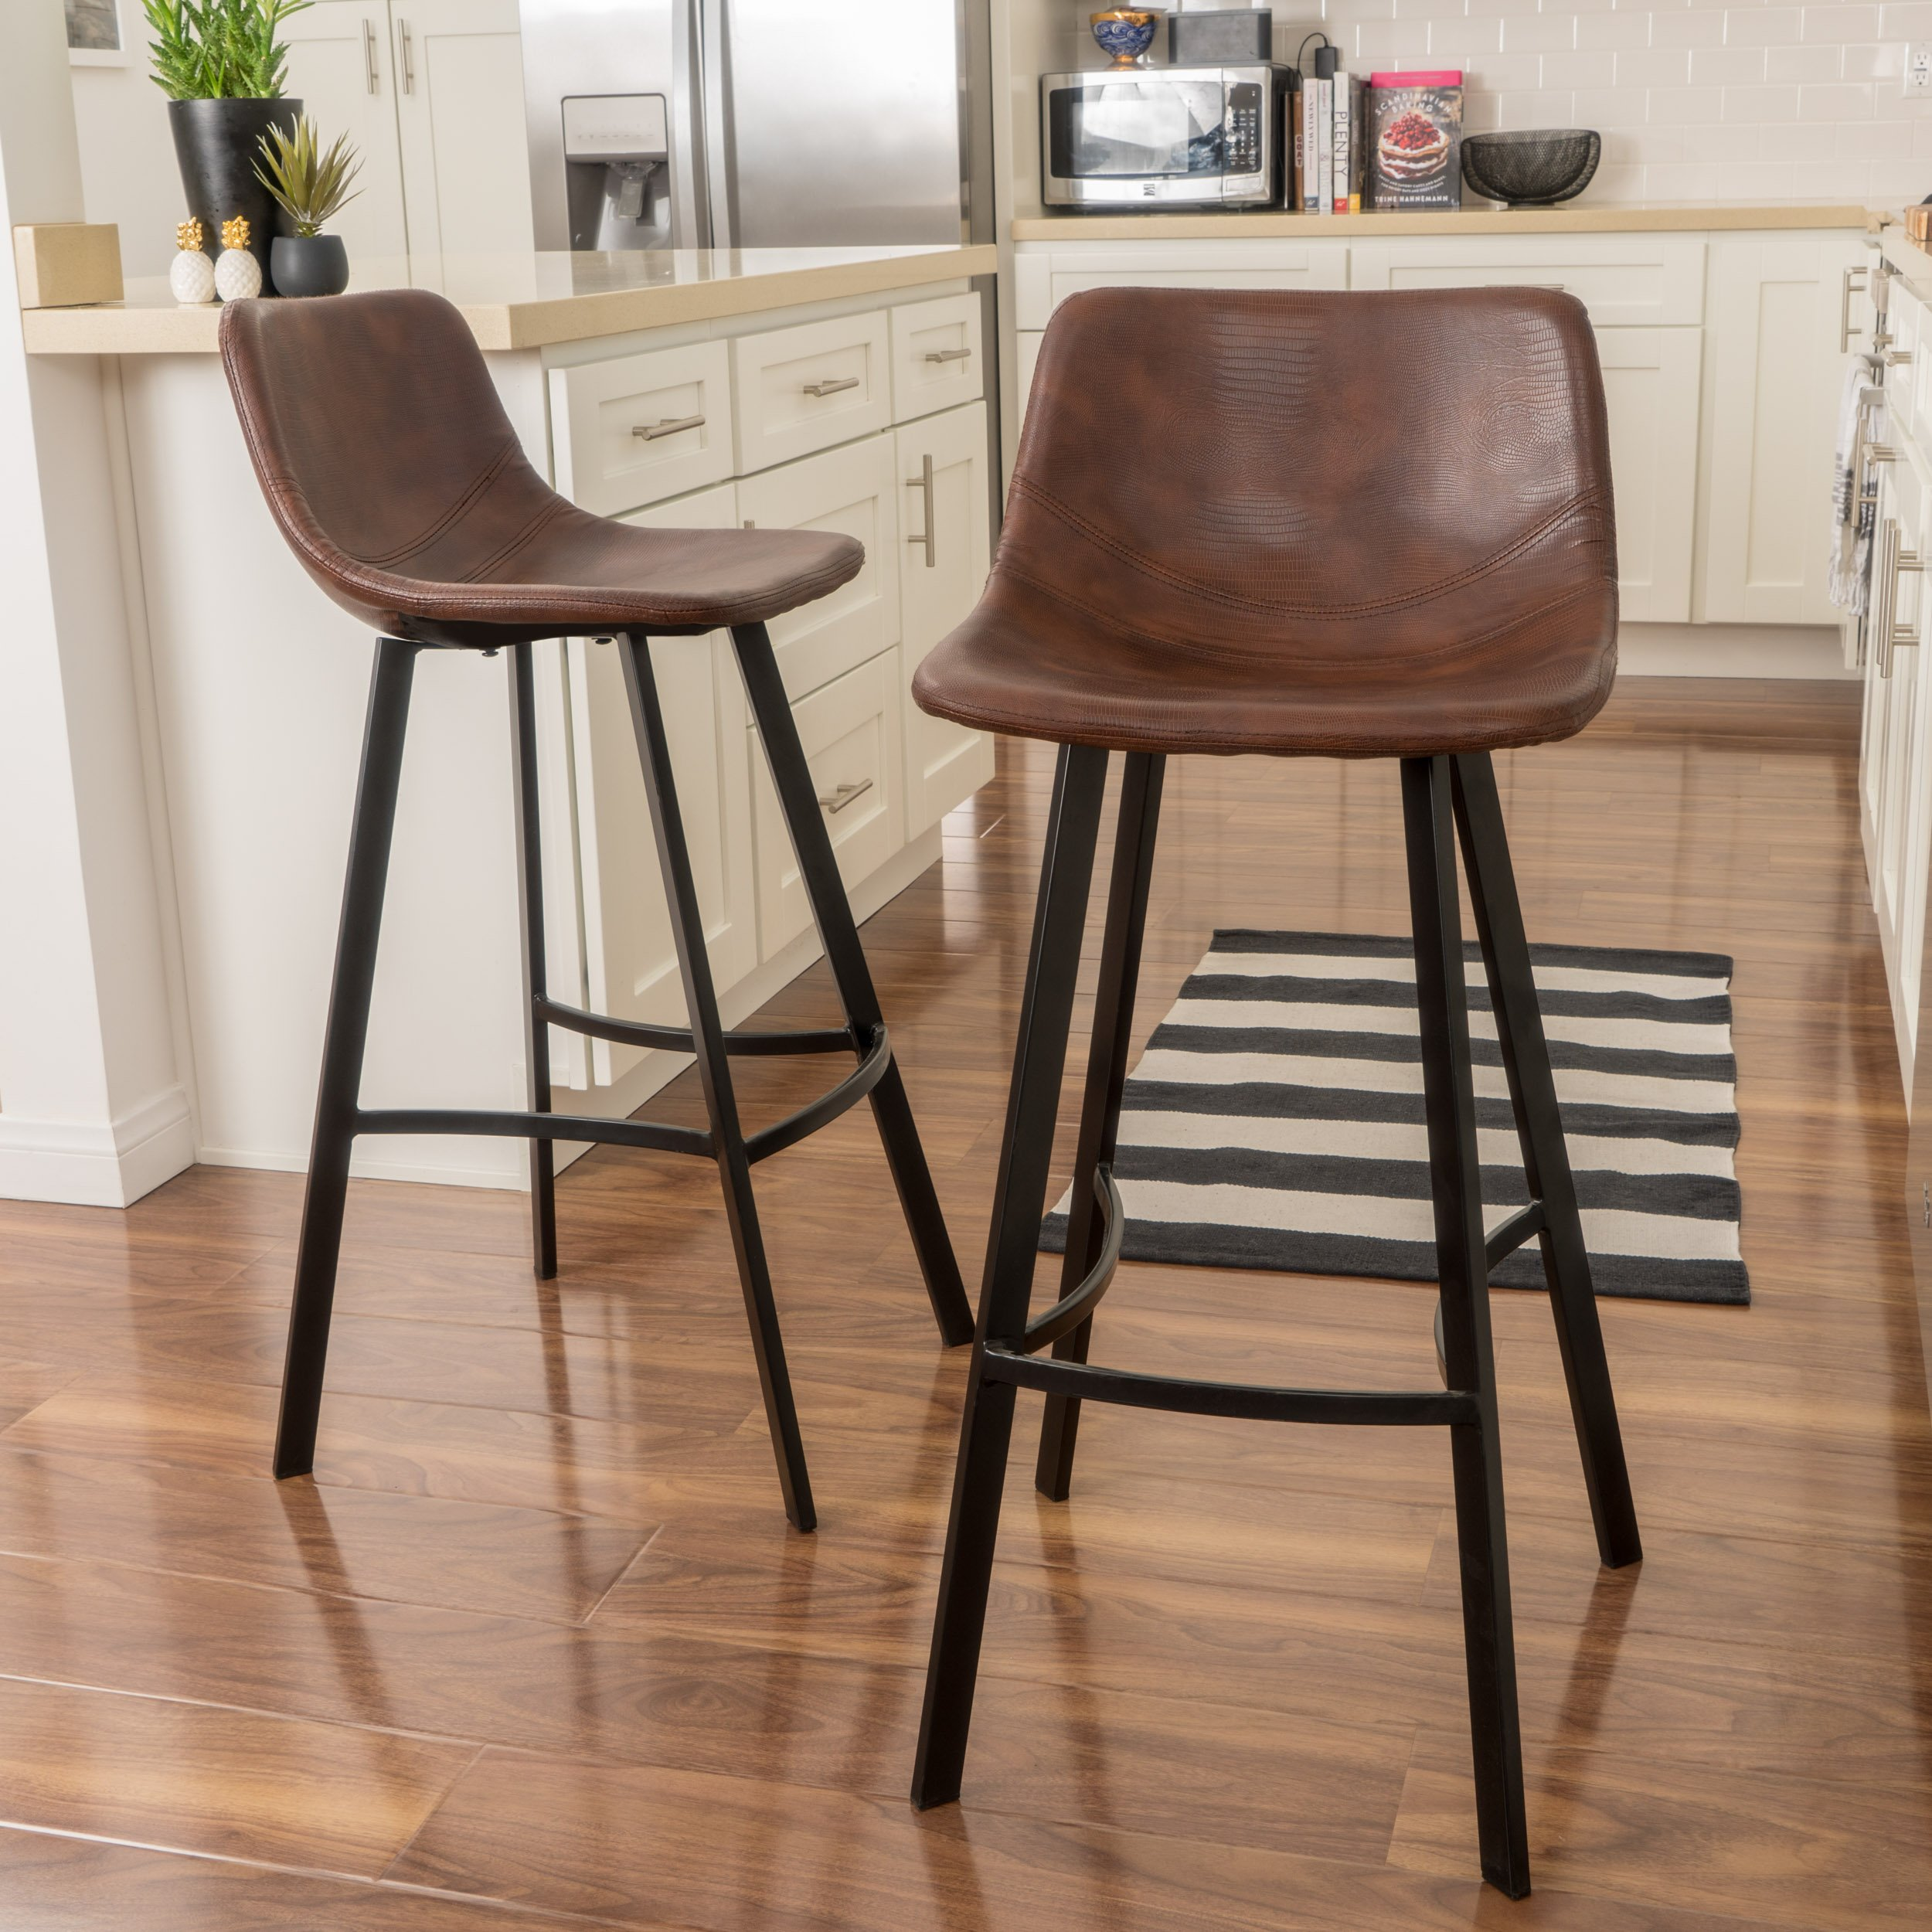 Christopher Knight Home 298406 Dax Snake Skin Brown Bar Stool (Set of 2) by Christopher Knight Home